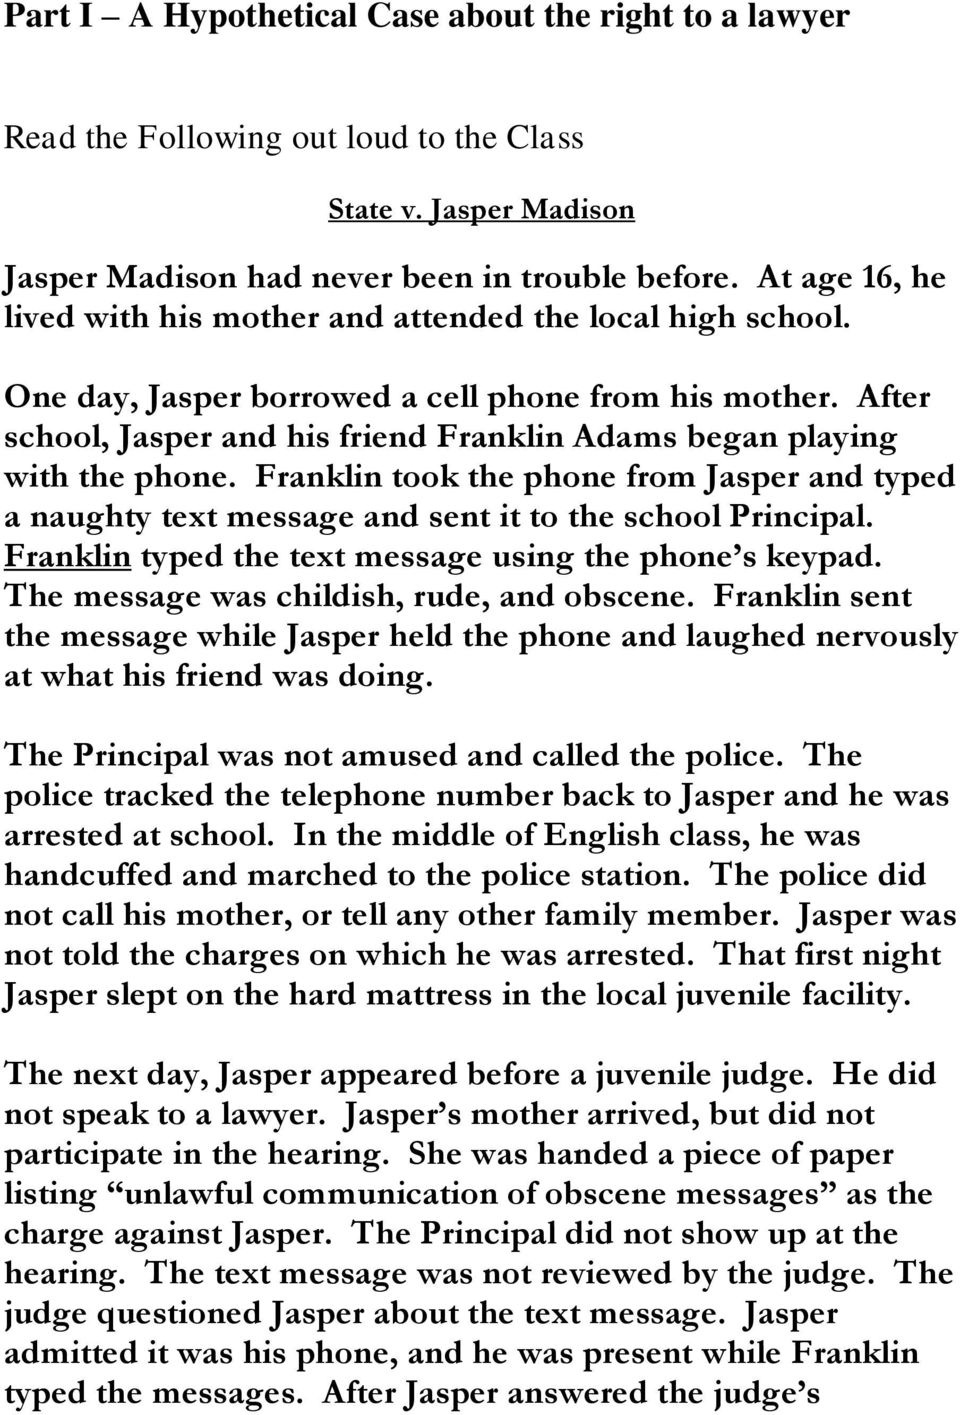 After school, Jasper and his friend Franklin Adams began playing with the phone. Franklin took the phone from Jasper and typed a naughty text message and sent it to the school Principal.